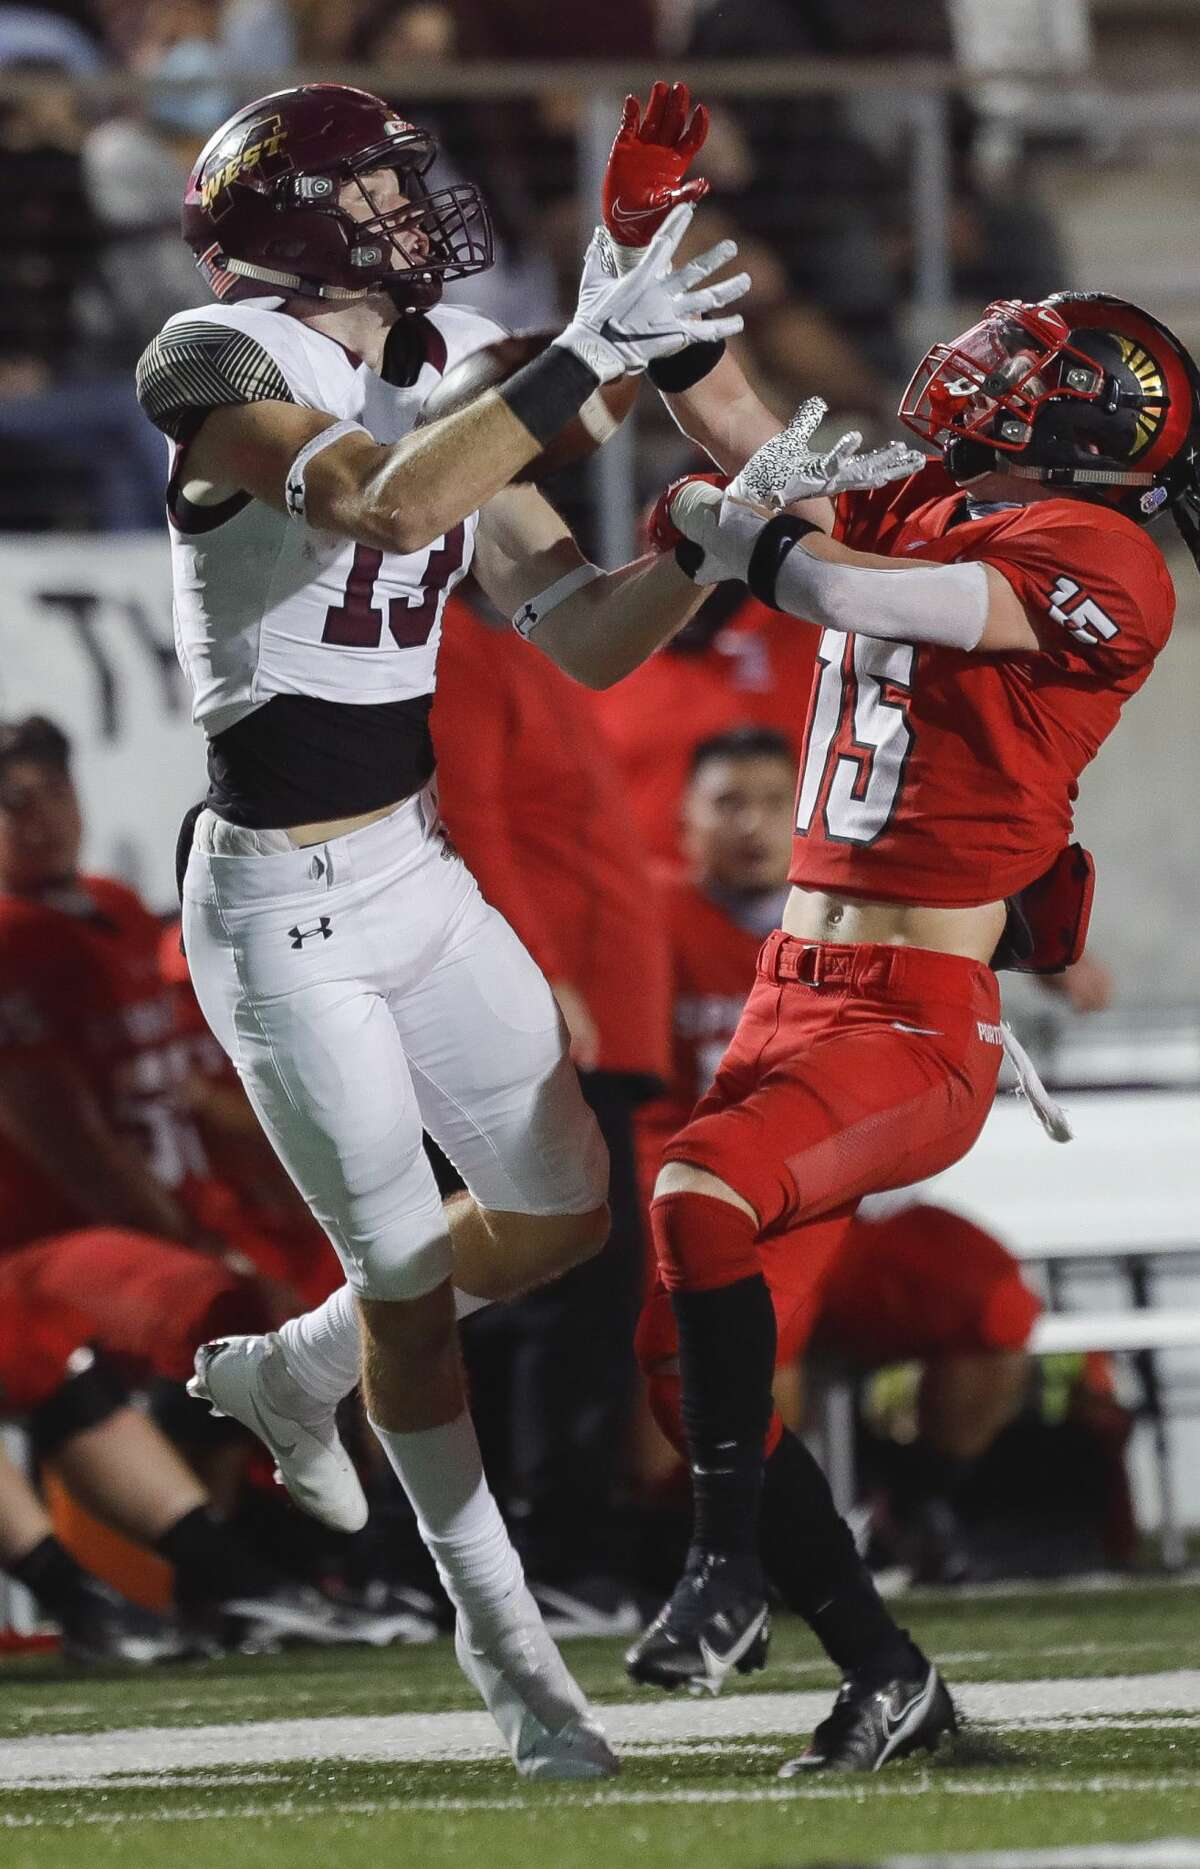 Porter defensive back Isaac Roberts (15) breaks up a pass intended for Magnolia West wide receiver Jeffrey Krop (13) during the fourth quarter of a District 8-5A high school football game at Randall Reed Stadium, Friday, Nov. 20, 2020, in New Caney. Porter defeated Magnolia West 44-35.